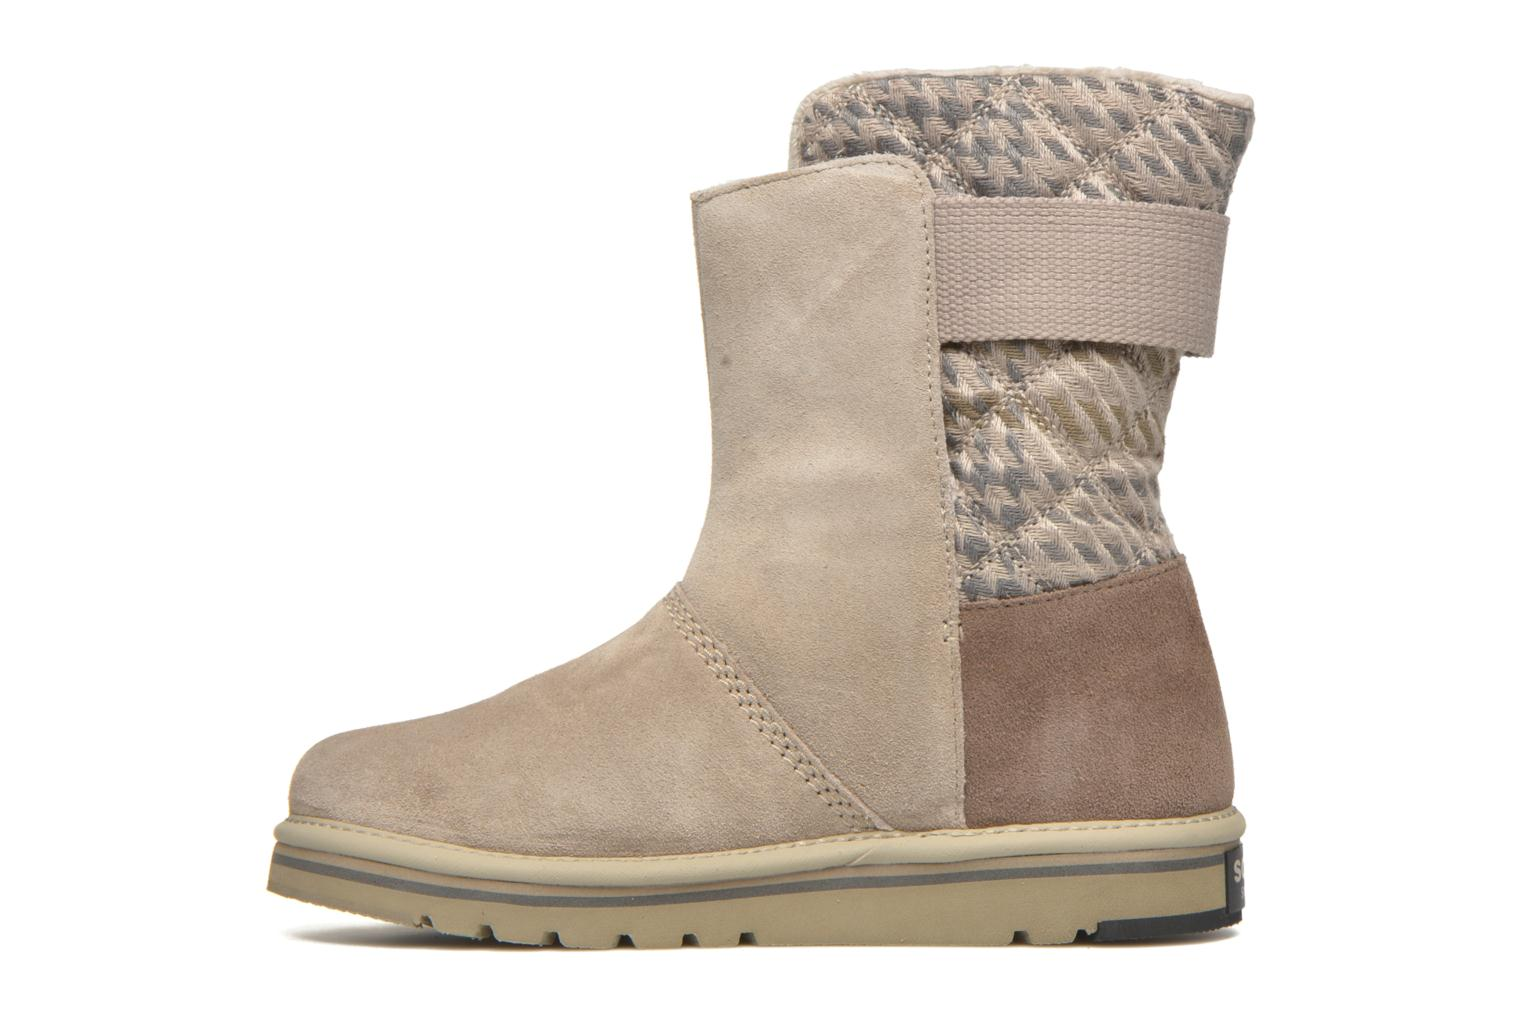 Bottines et boots Sorel Newbie I Gris vue face